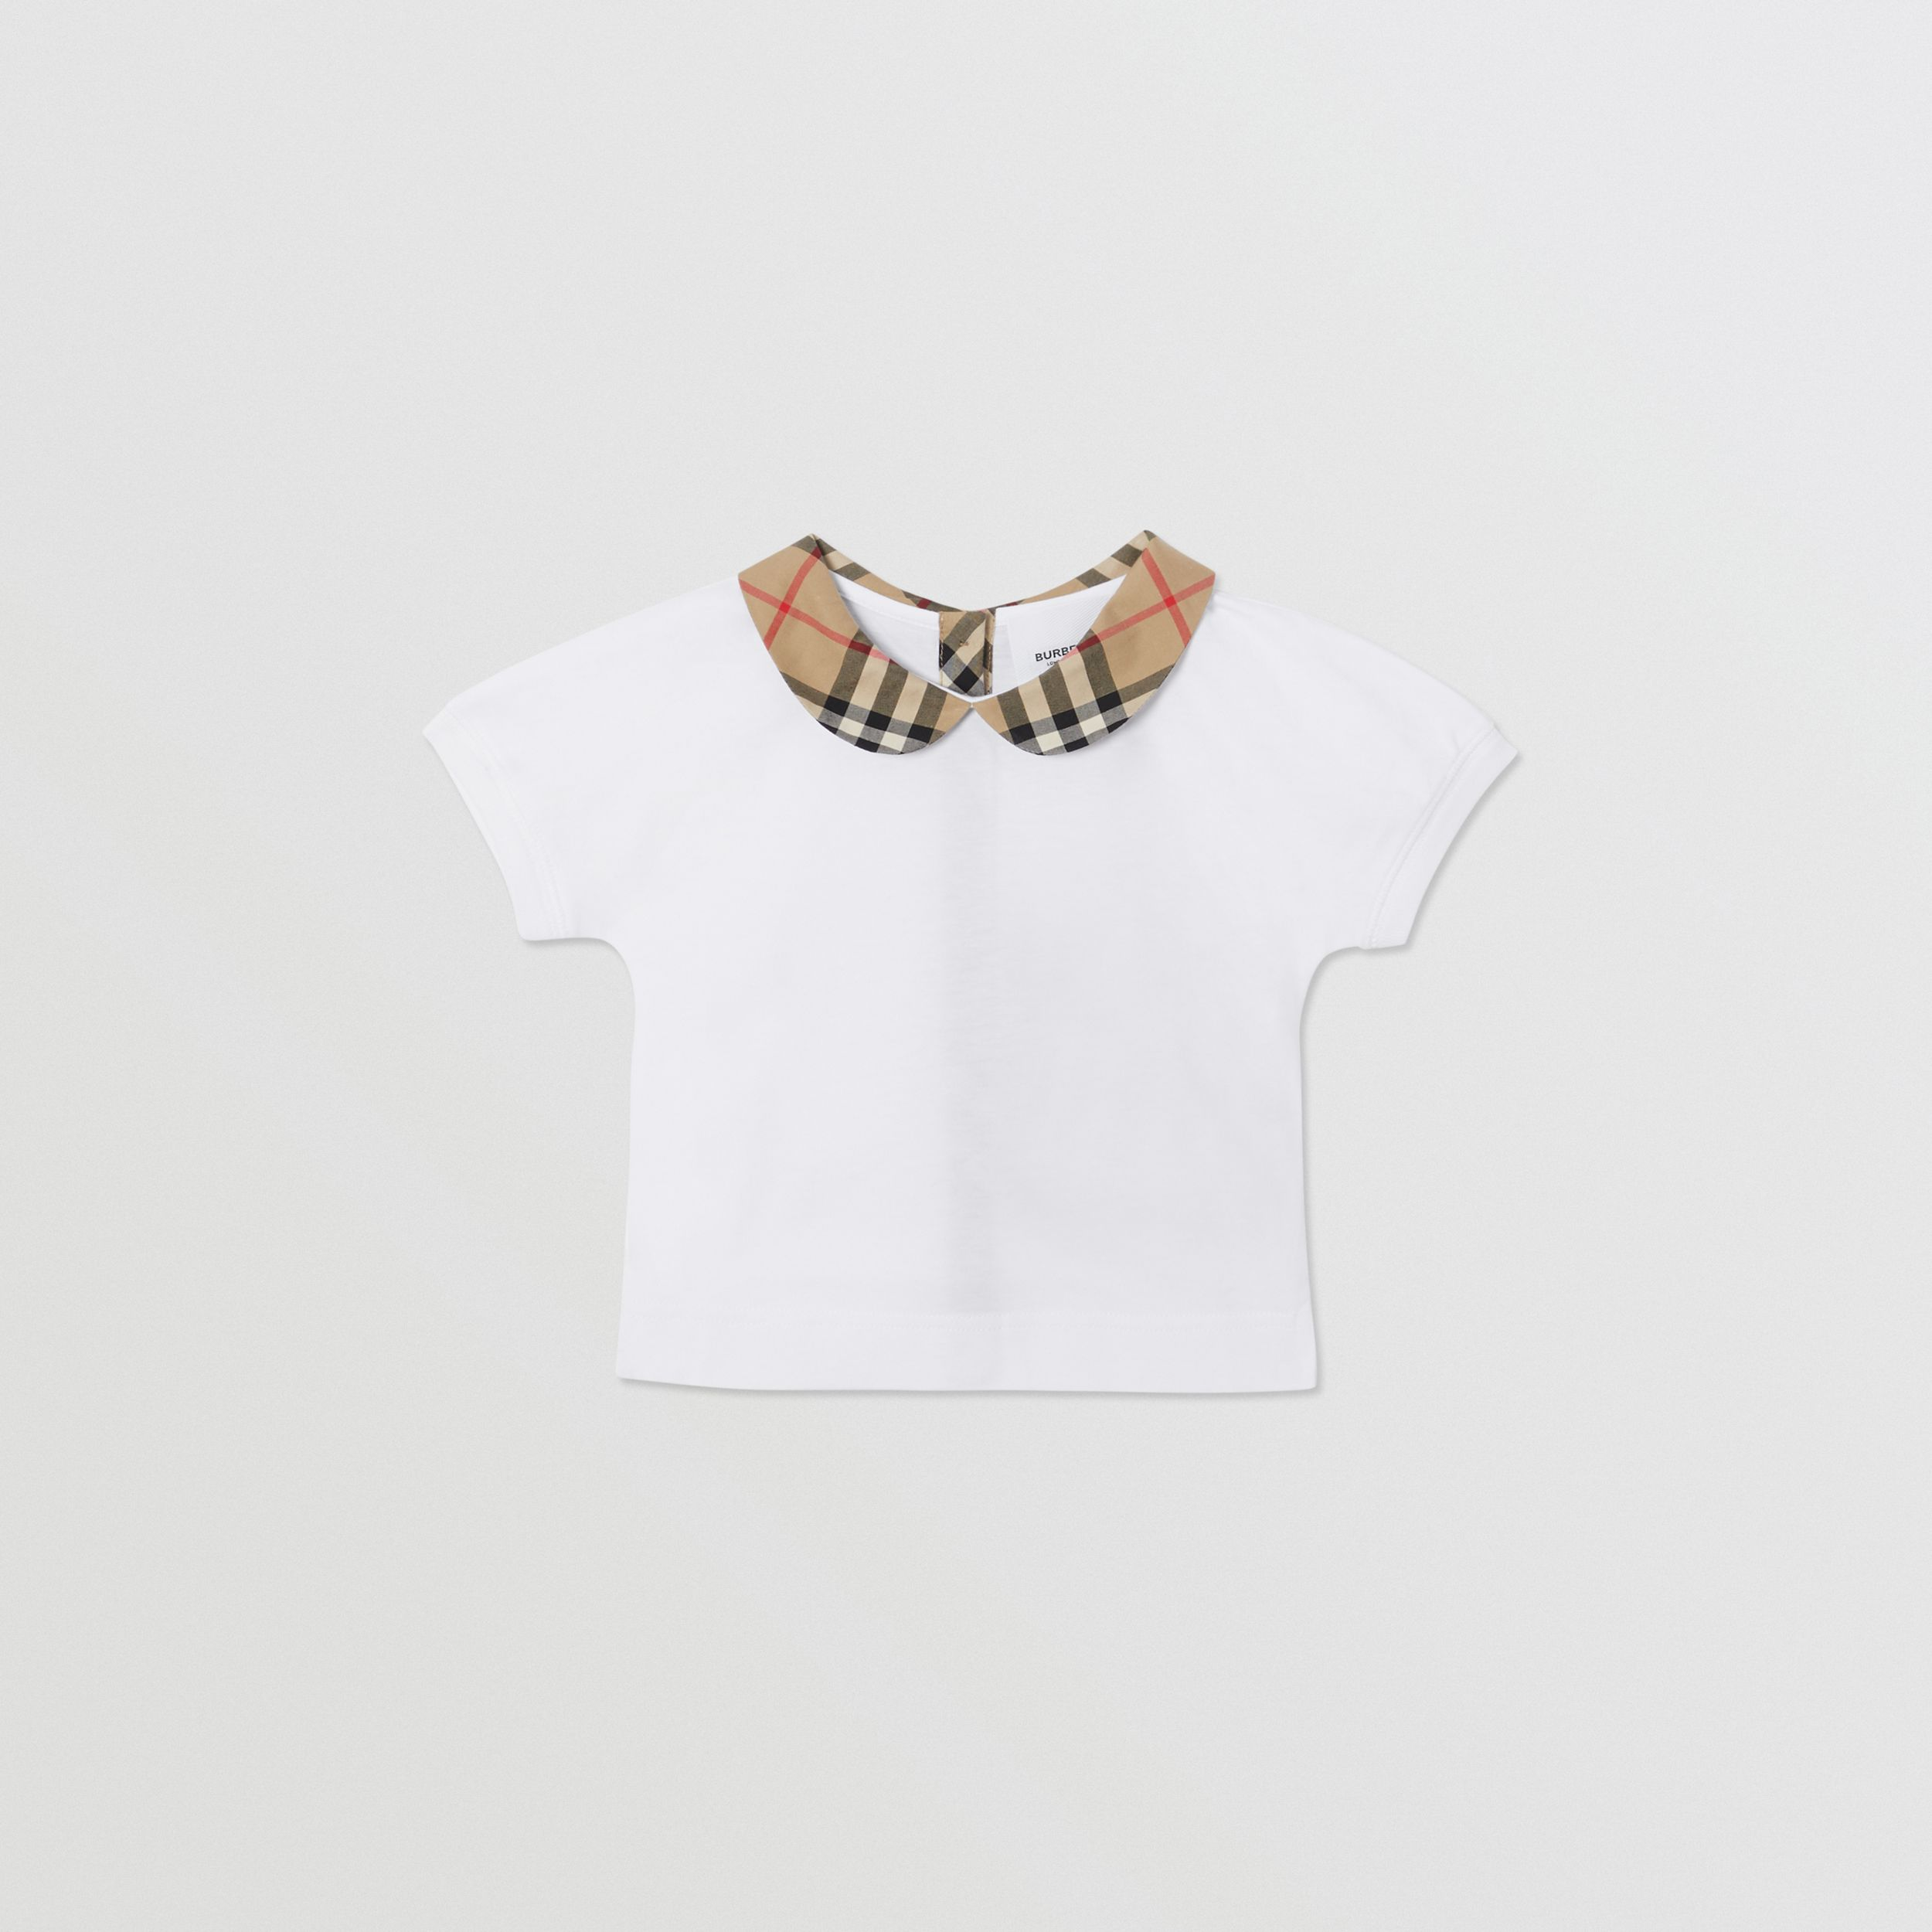 Vintage Check Trim Cotton T-shirt in White - Children | Burberry - 1